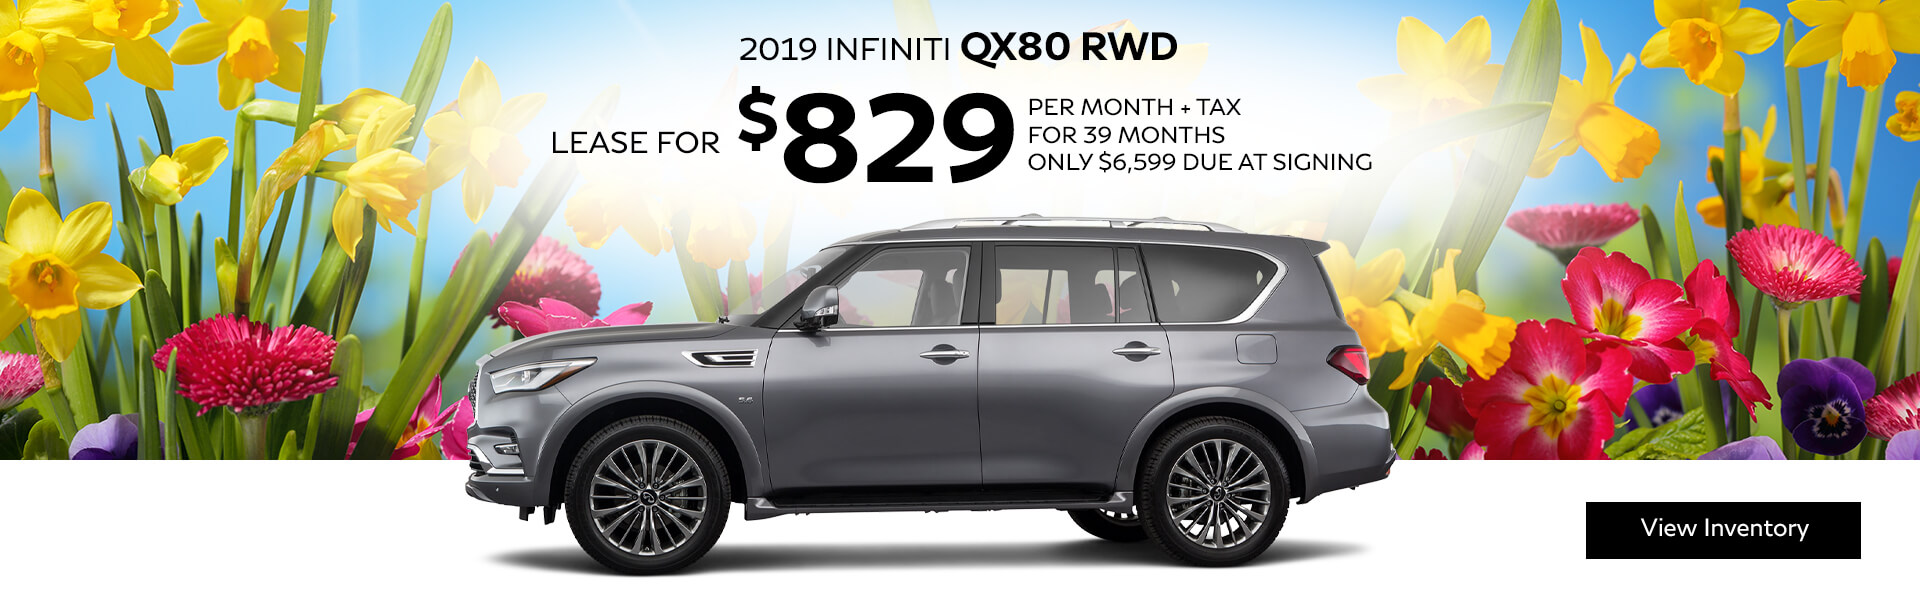 2019 QX80 - Lease for $829